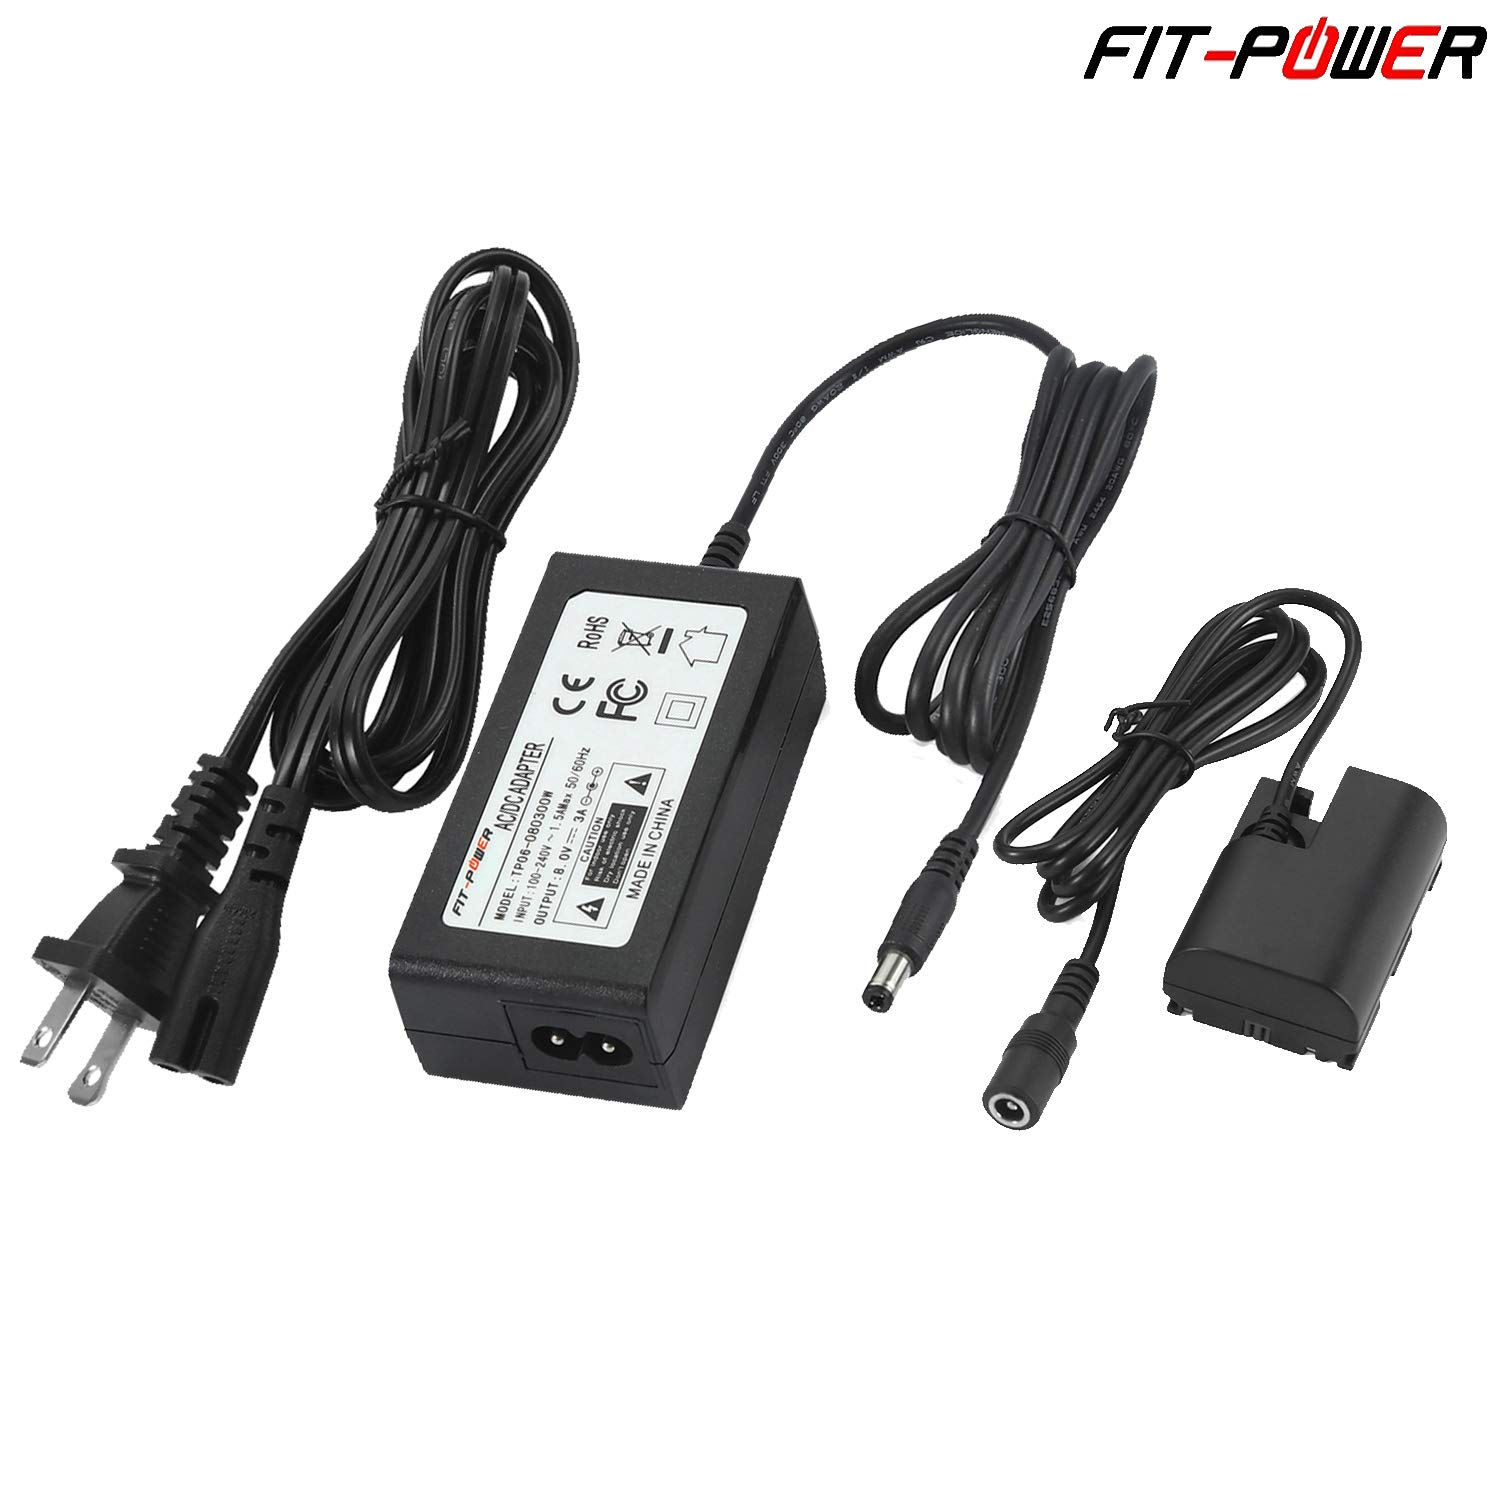 FIT-POWER ACK-E6 Repalcement AC Power Adapter kit for Canon EOS 5DS, 6D, 7D, 60D, 70D, 60Da, 5D Mark II III IV, 7D Mark II, 5DS R, Fully-Decode LP-E6 LP-E6N Battery LC-E6 LC-E6E Charger